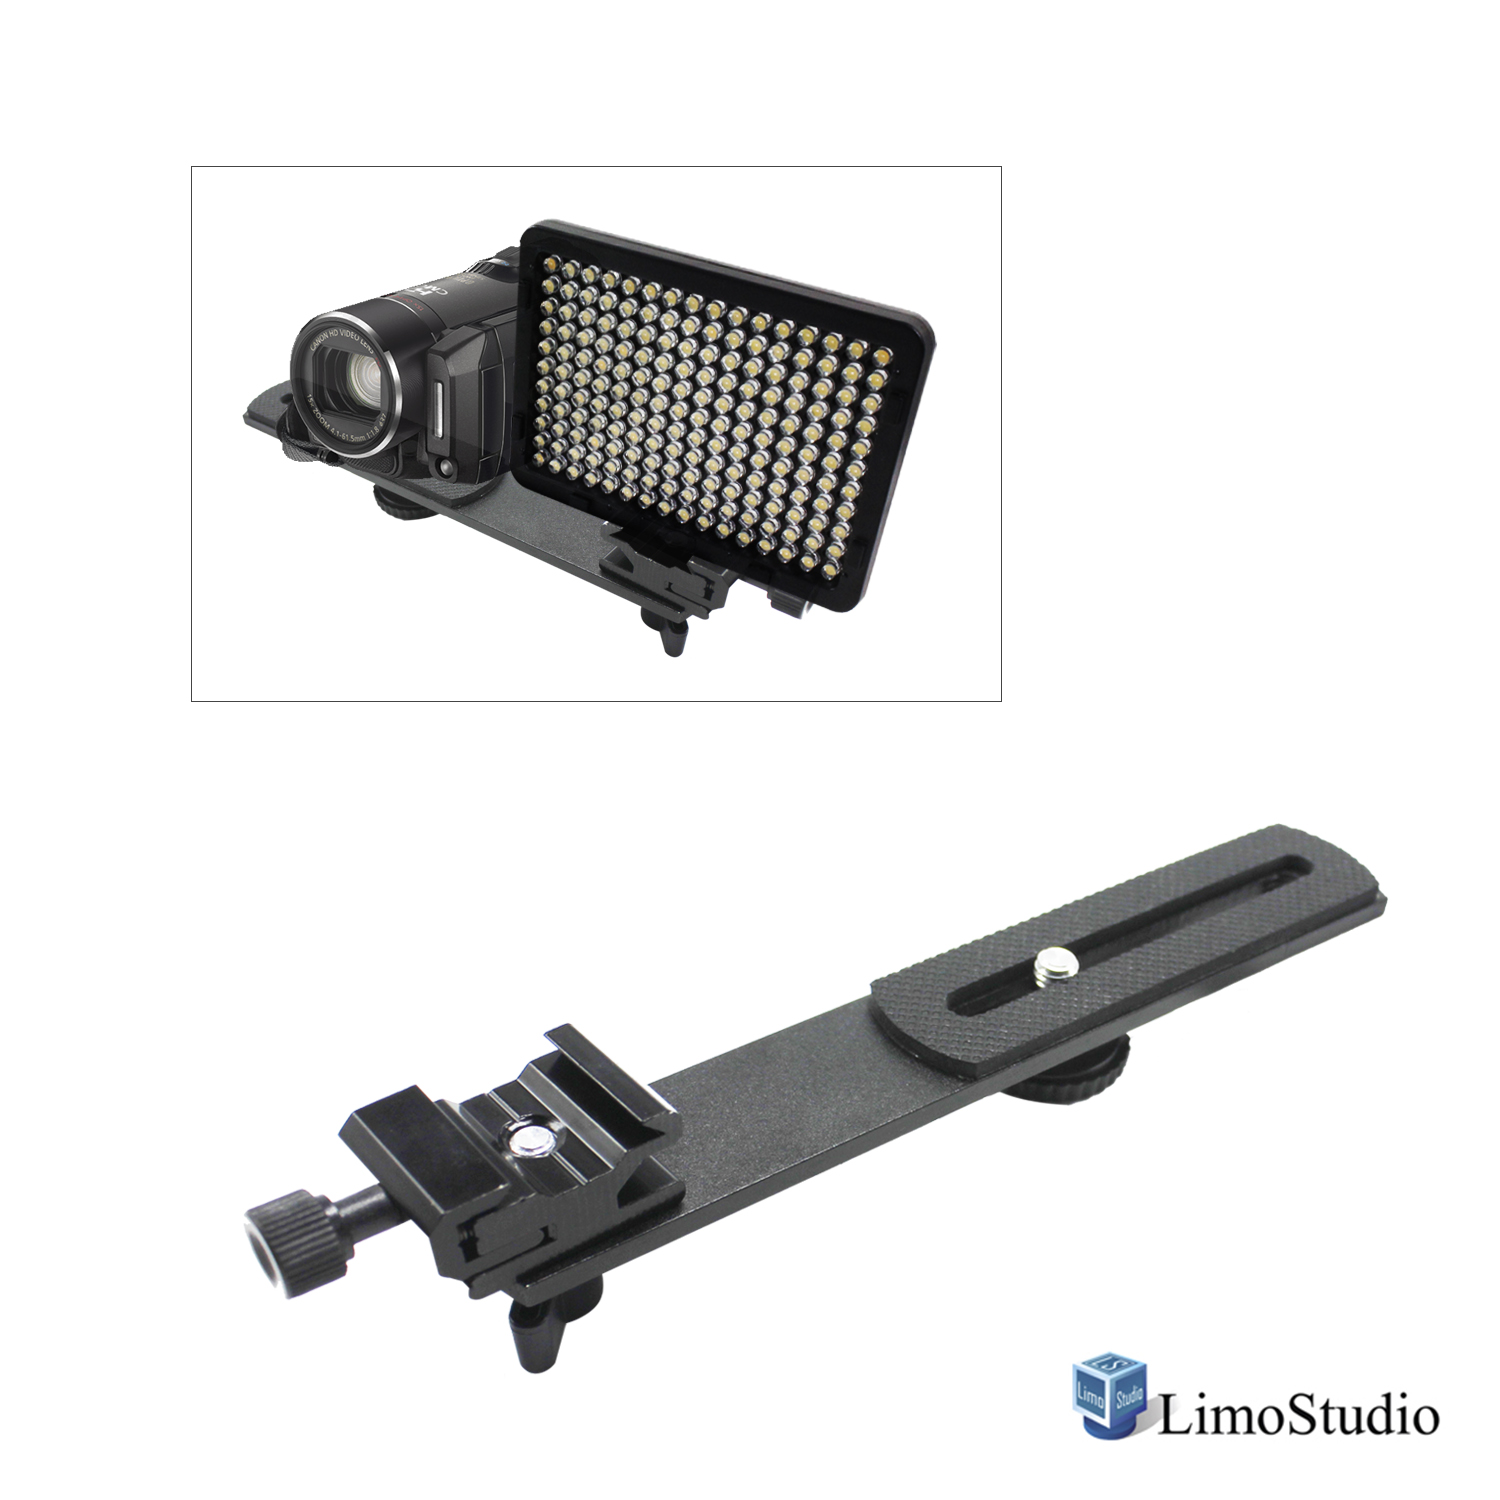 "Loadstone Studio 6.3 inch Straight Camera Flash Bracket 1/4""-20 Screw Hot Shoe Mount for Video Lights, Microphone, Monitor and Camera Accessories, WMLS4472"